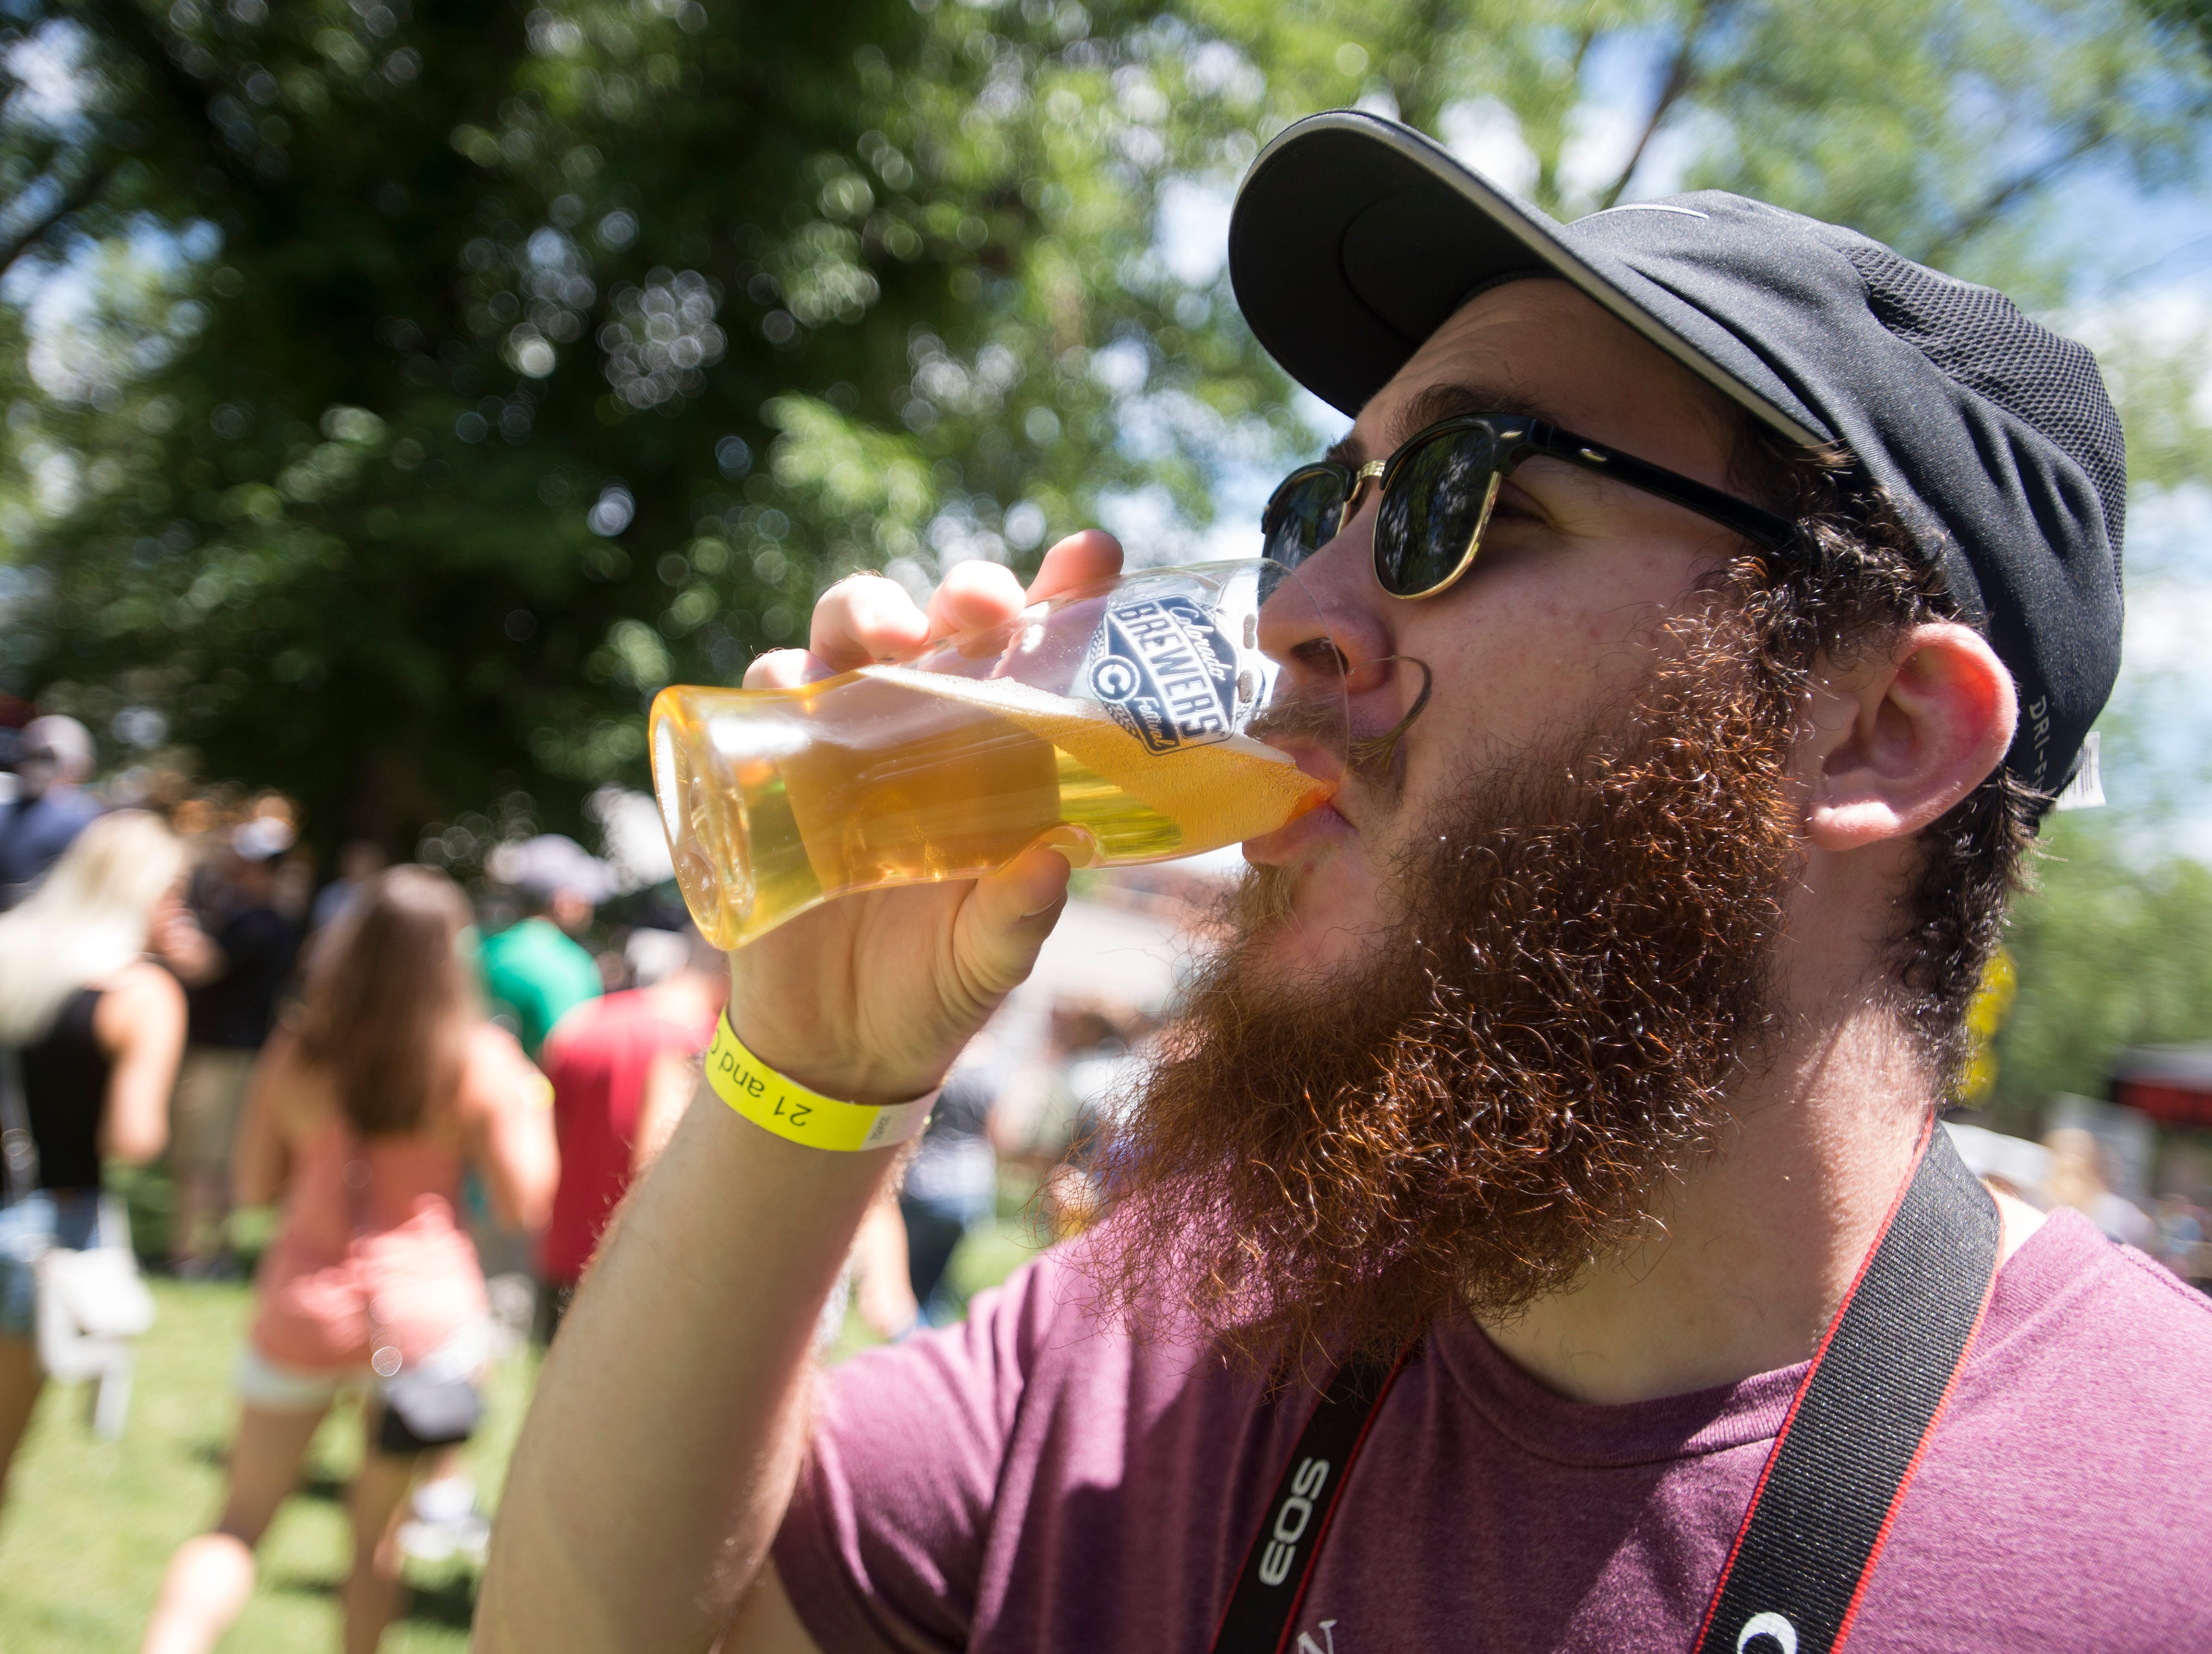 Dylan Hochstedler sips a beer at the Colorado Brewers' Festival in Washington Park on Friday, June 22, 2018. The festival returned for its 29th year with over 100 craft brews from around the state.